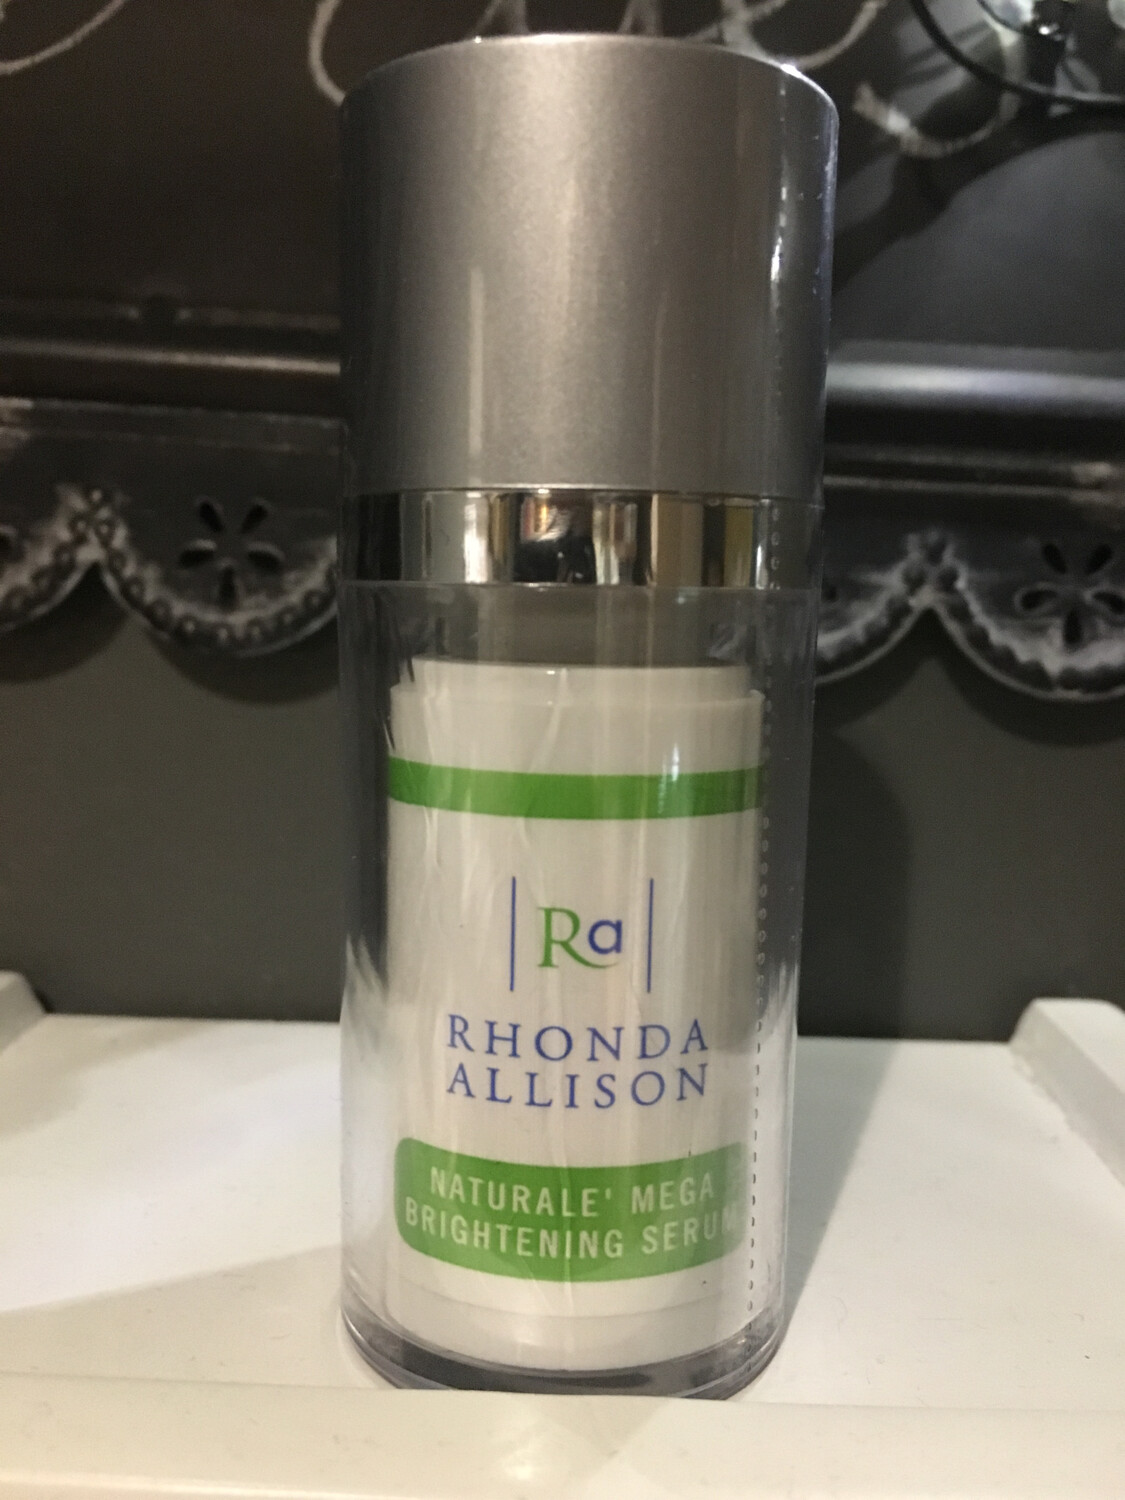 Rhonda Allison Naturale Mega Brightening Serum